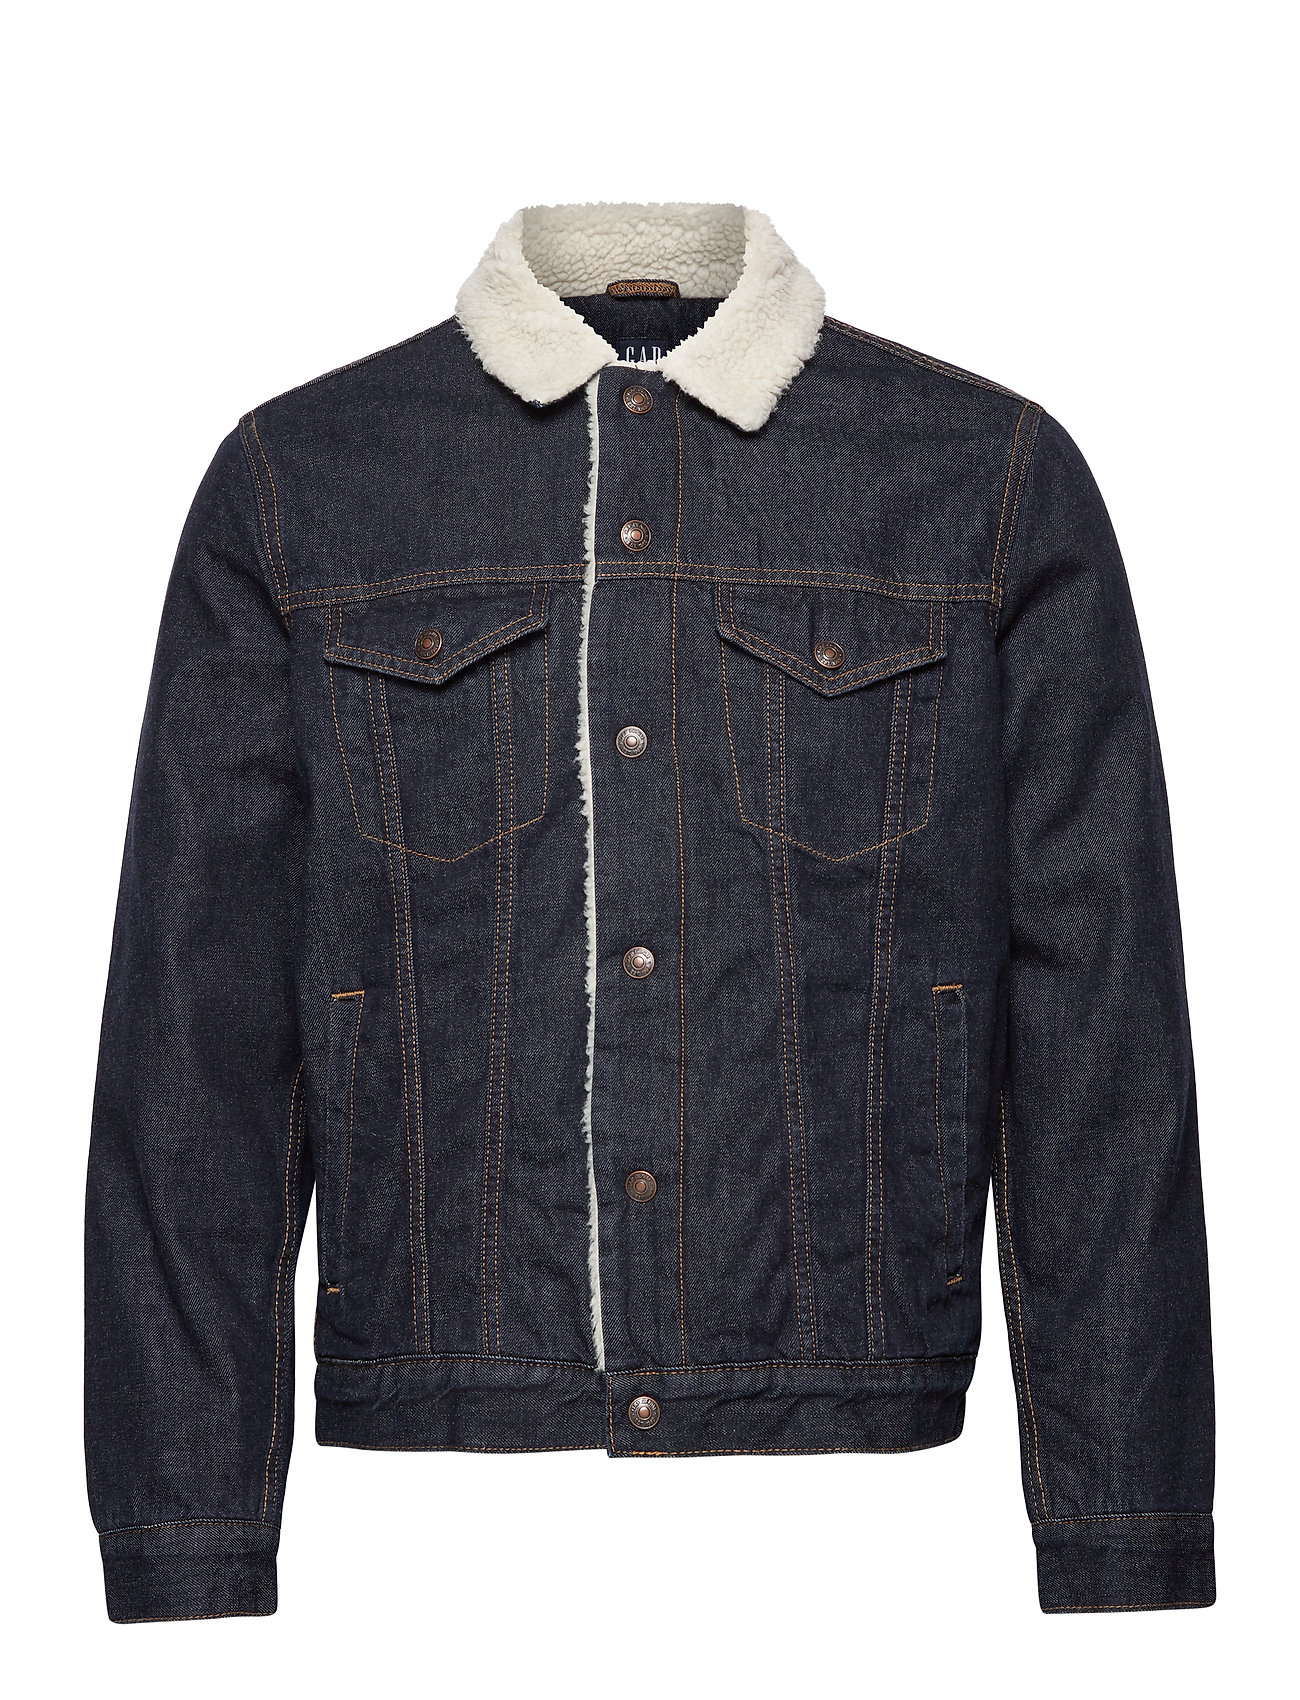 GAP V-DENIM ICON SHERPA - RINSE - RINSED